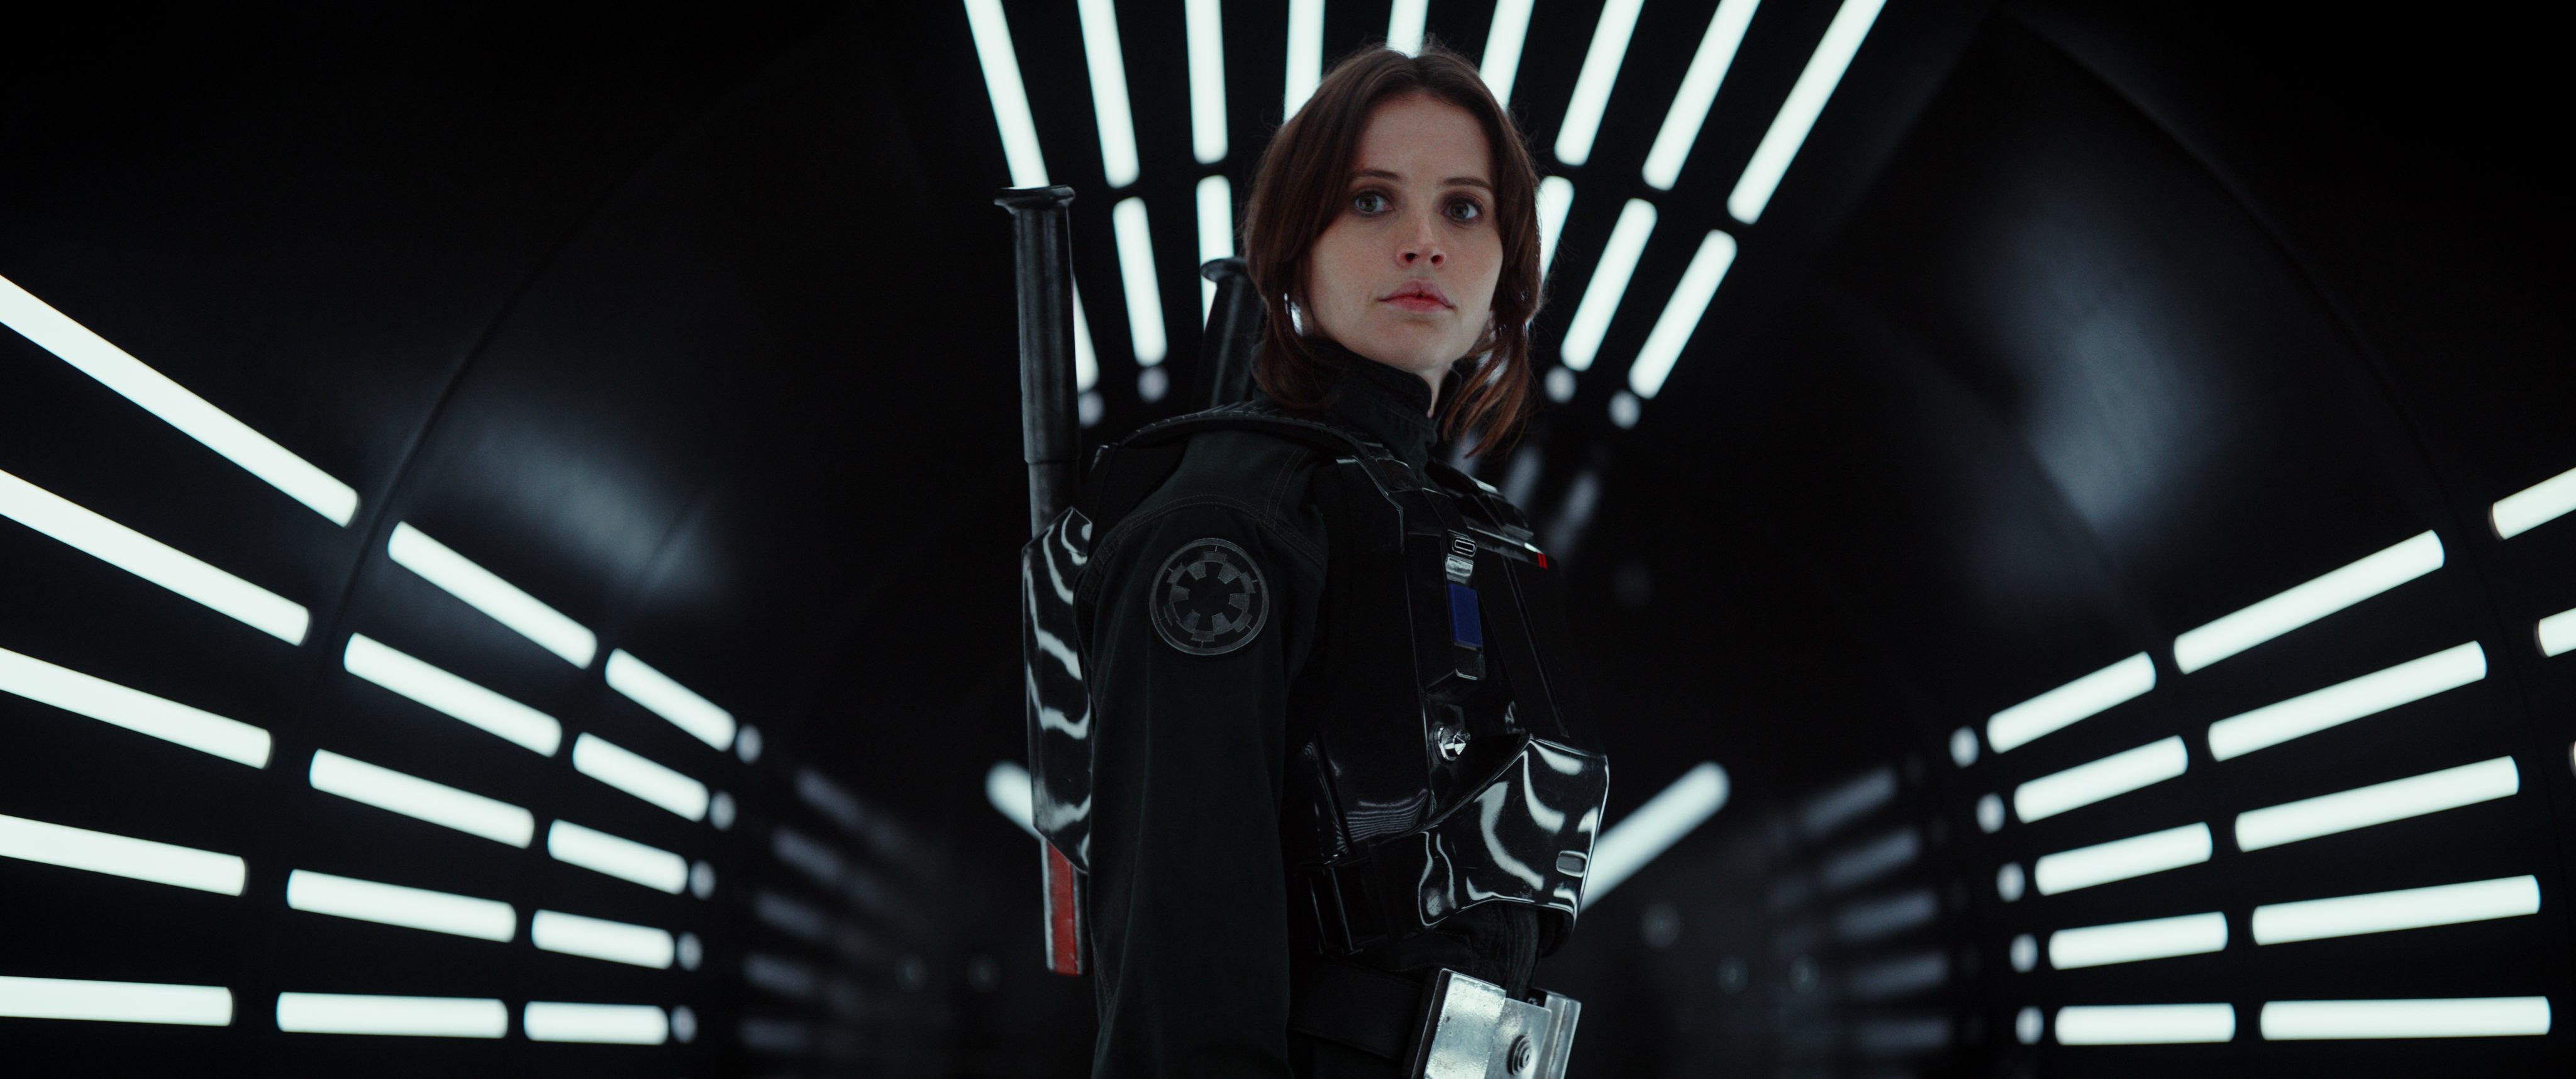 Rogue One: A Star Wars Story - co-starring... Canary Wharf? (Picture: Disney)